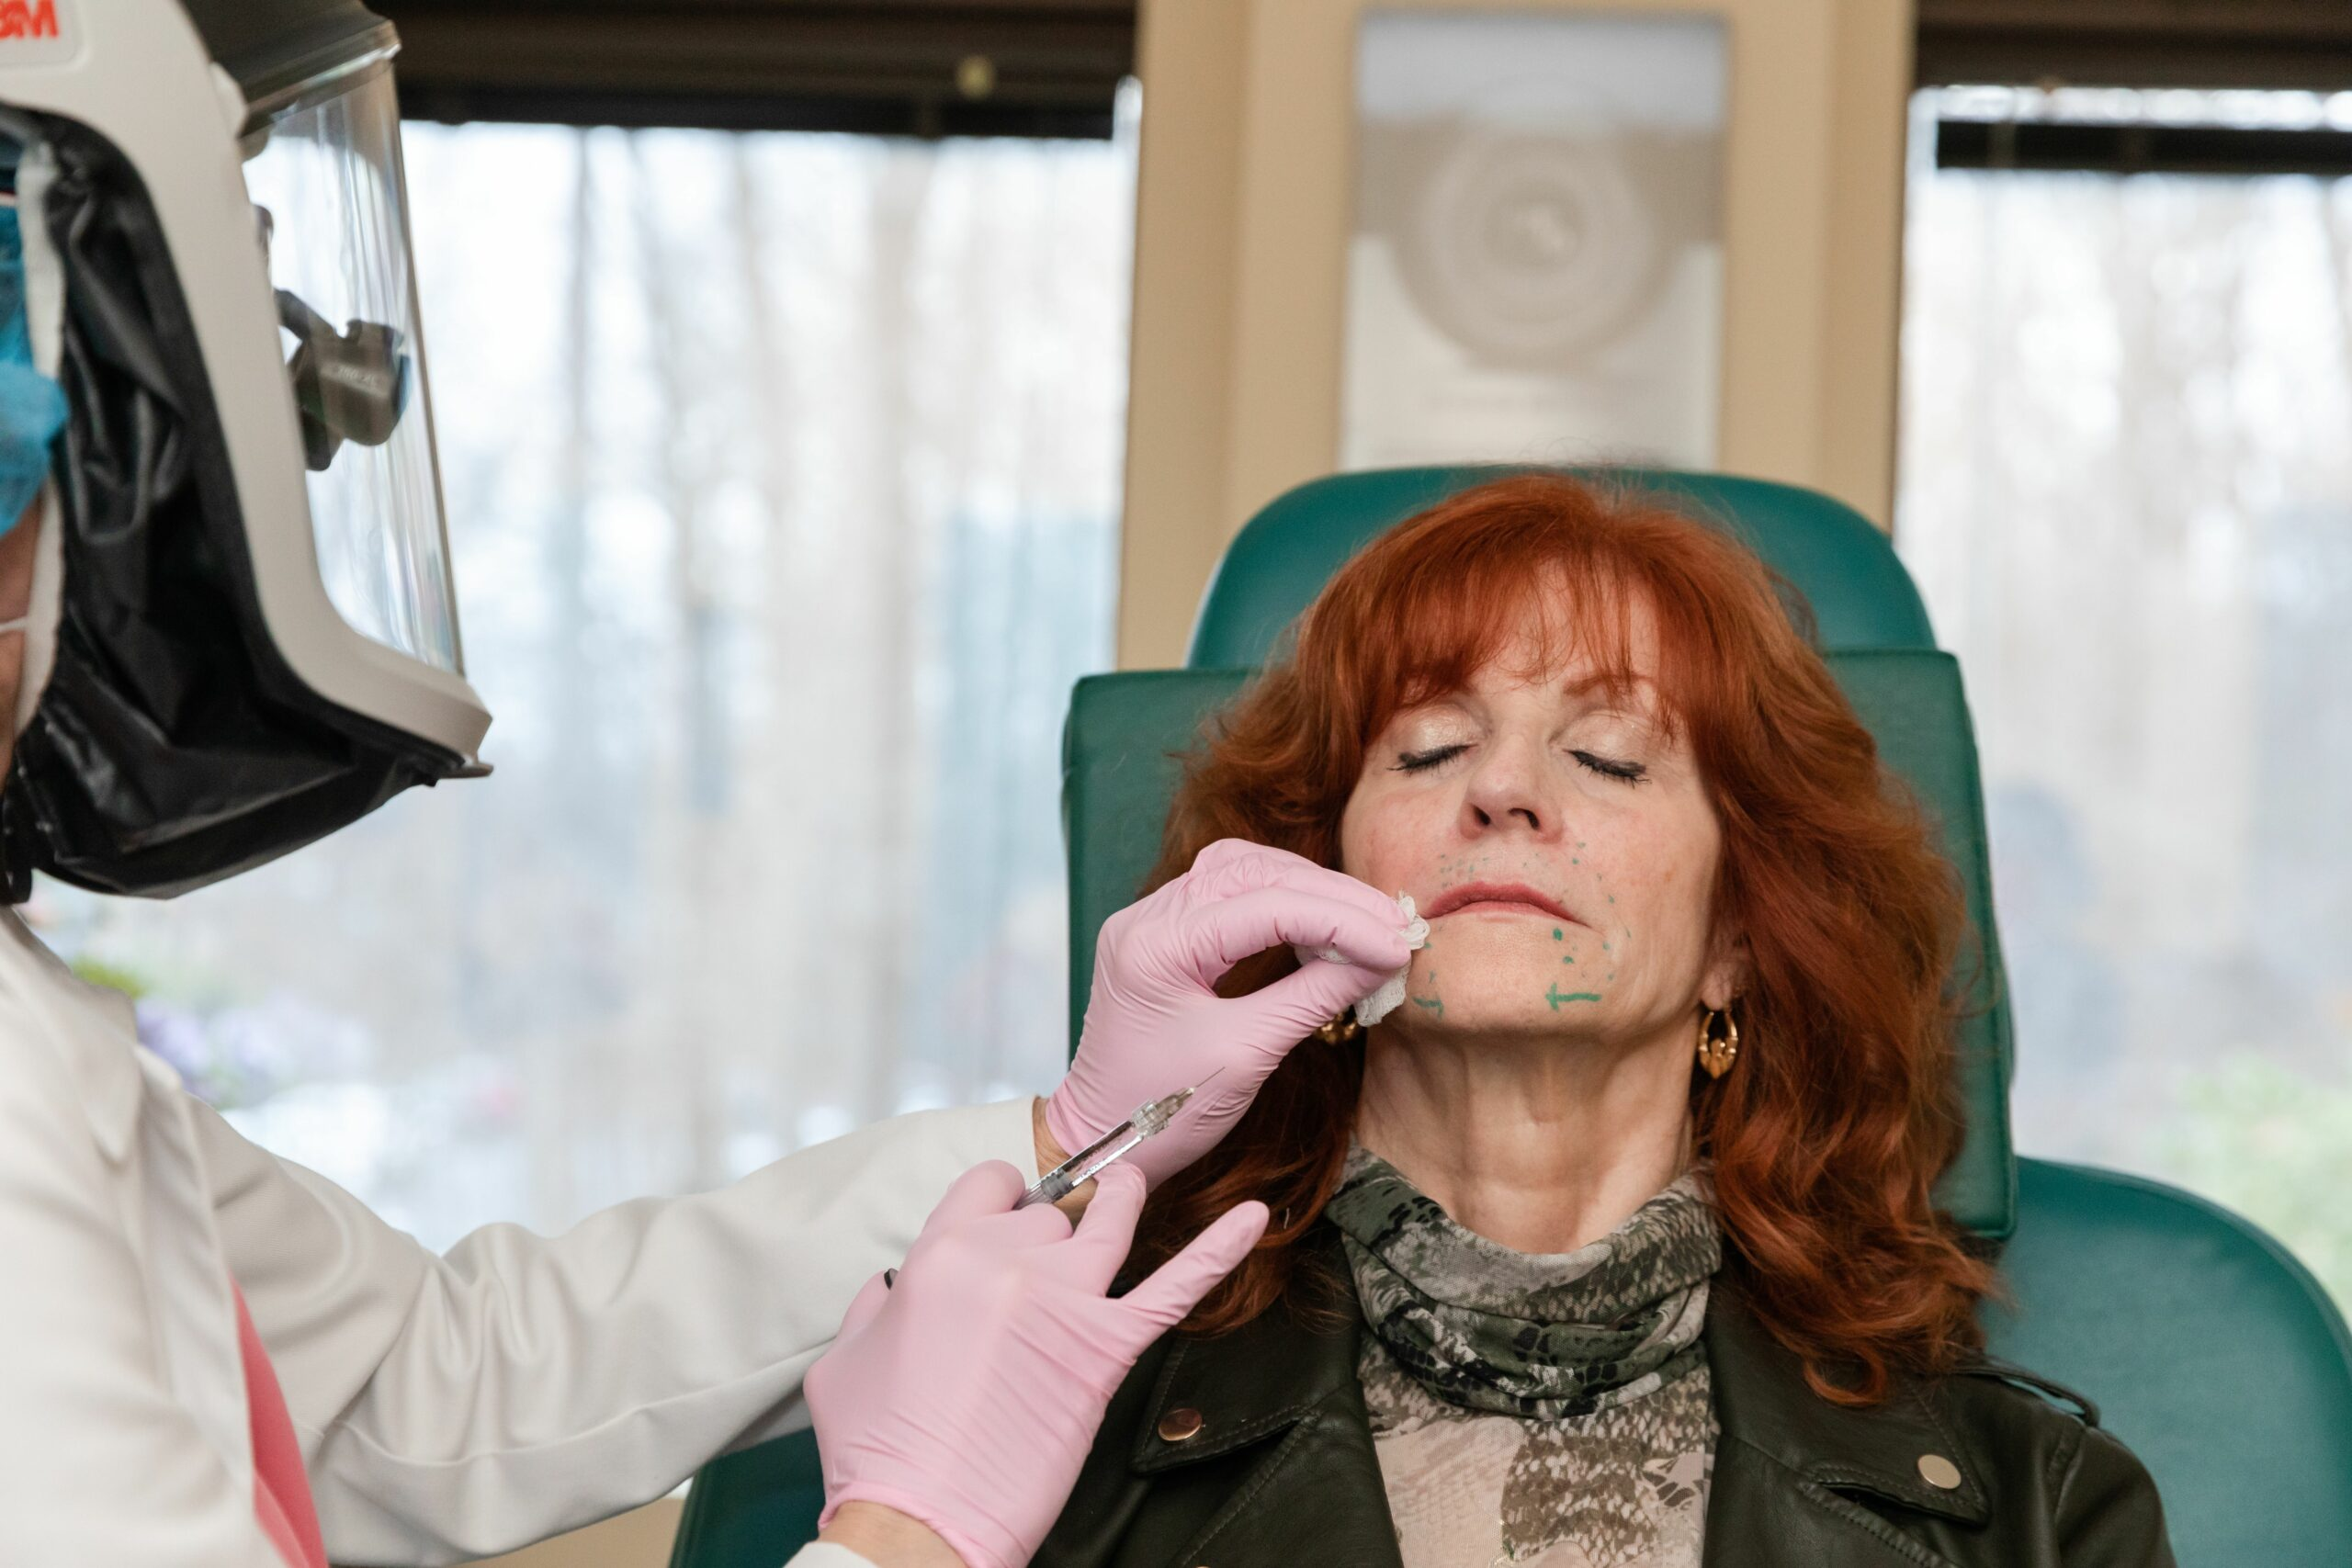 Board certified dermatologist Dr. Eugenie Brunner, MD FACS is injecting Bellafill injectable around the mouth of her patient for a youthful appearance in Princeton, NJ